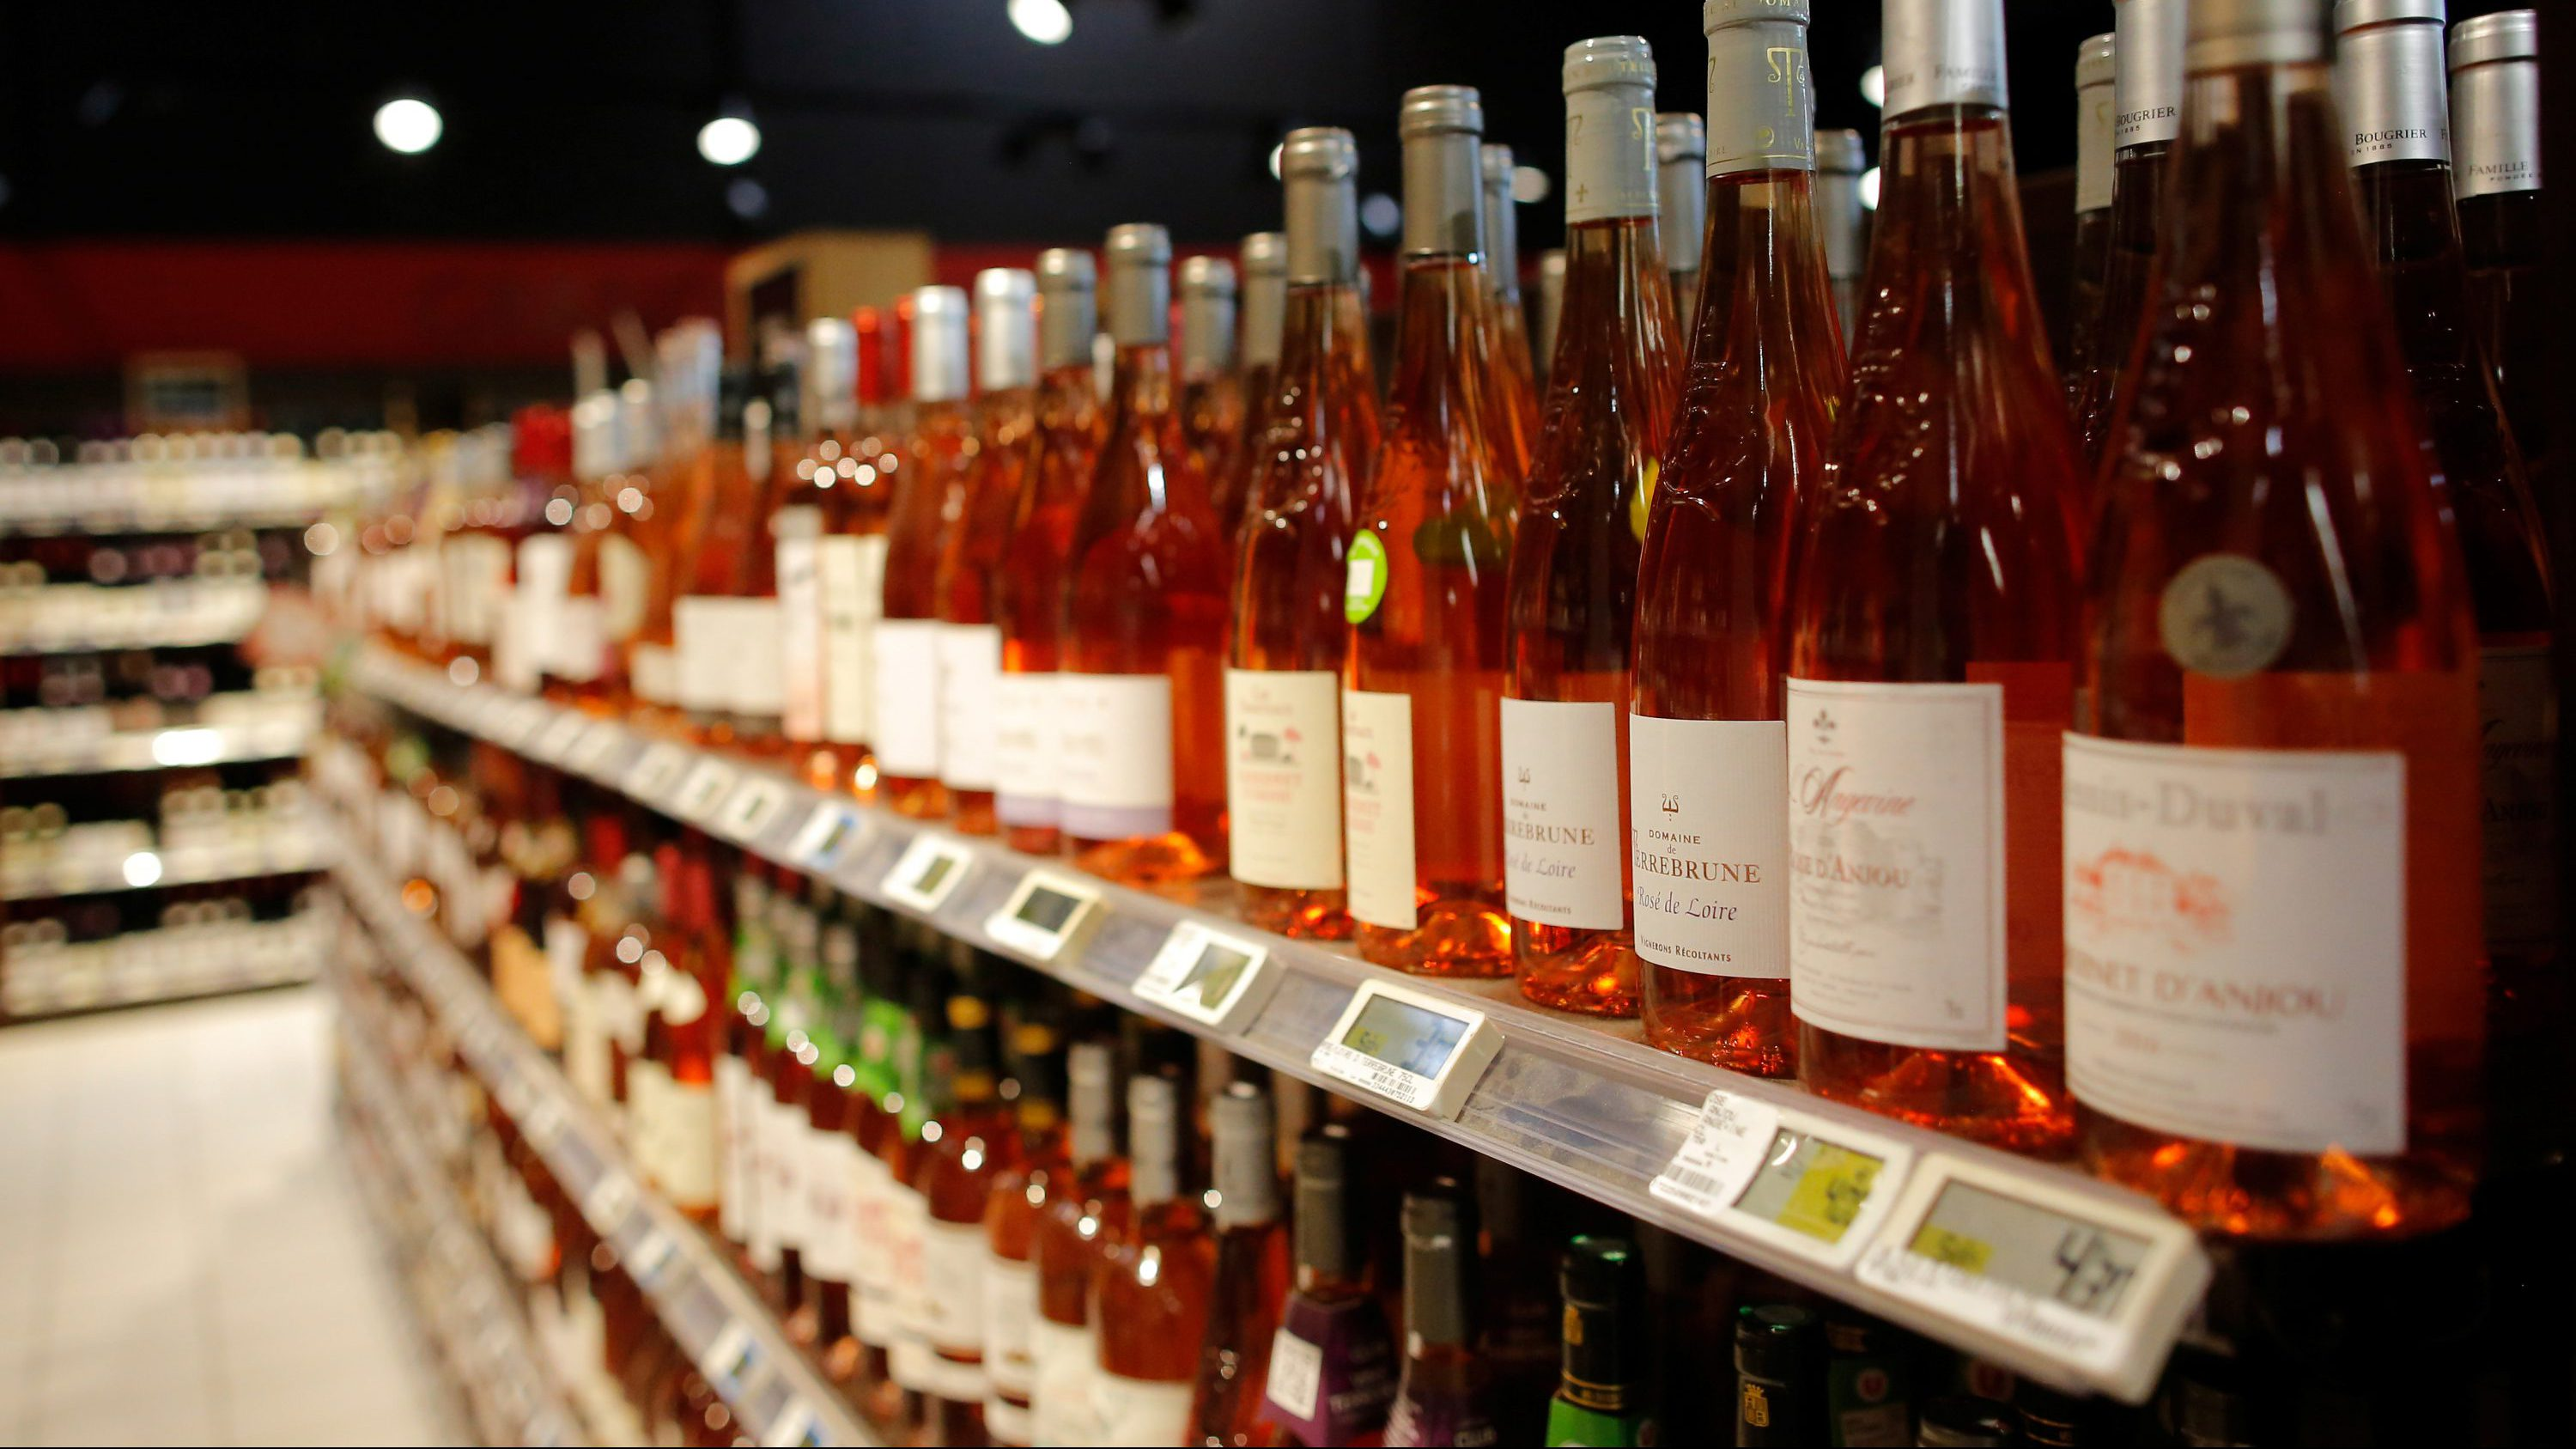 Bottles of rose wine are displayed for sale in a supermarket in Vertou, near Nantes, France, June 20, 2017.